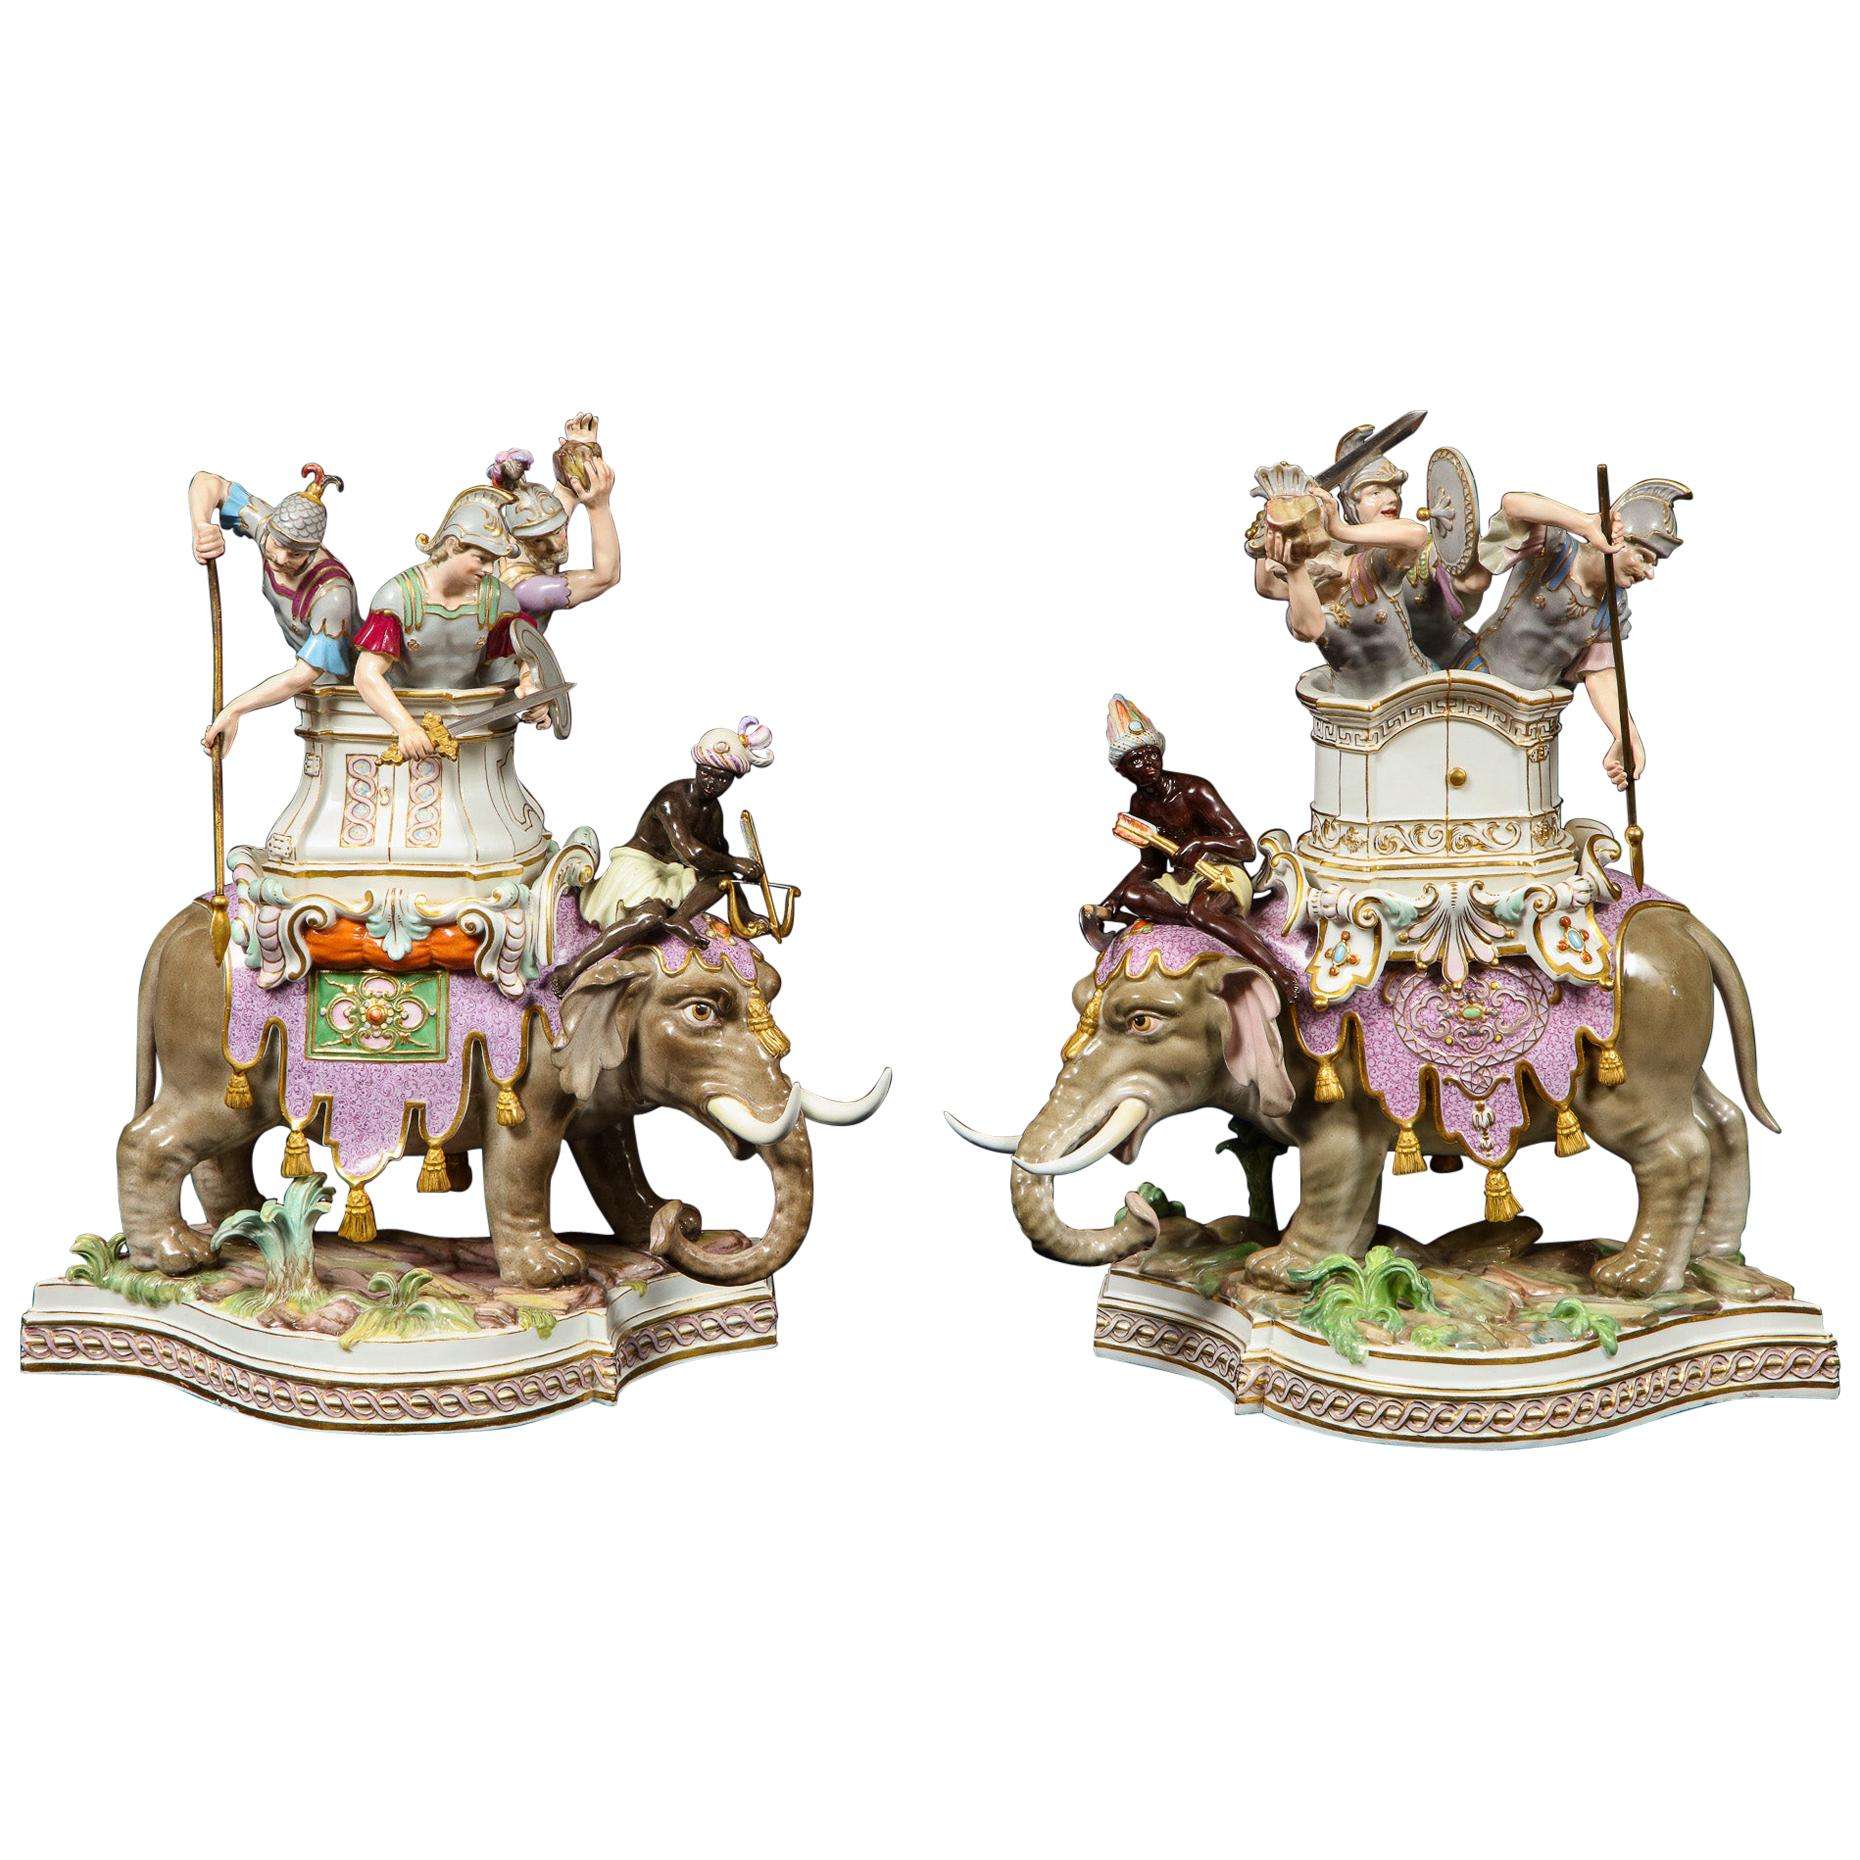 Important Pair of Meissen Porcelain Groups of Caparisoned Elephants and Soldiers